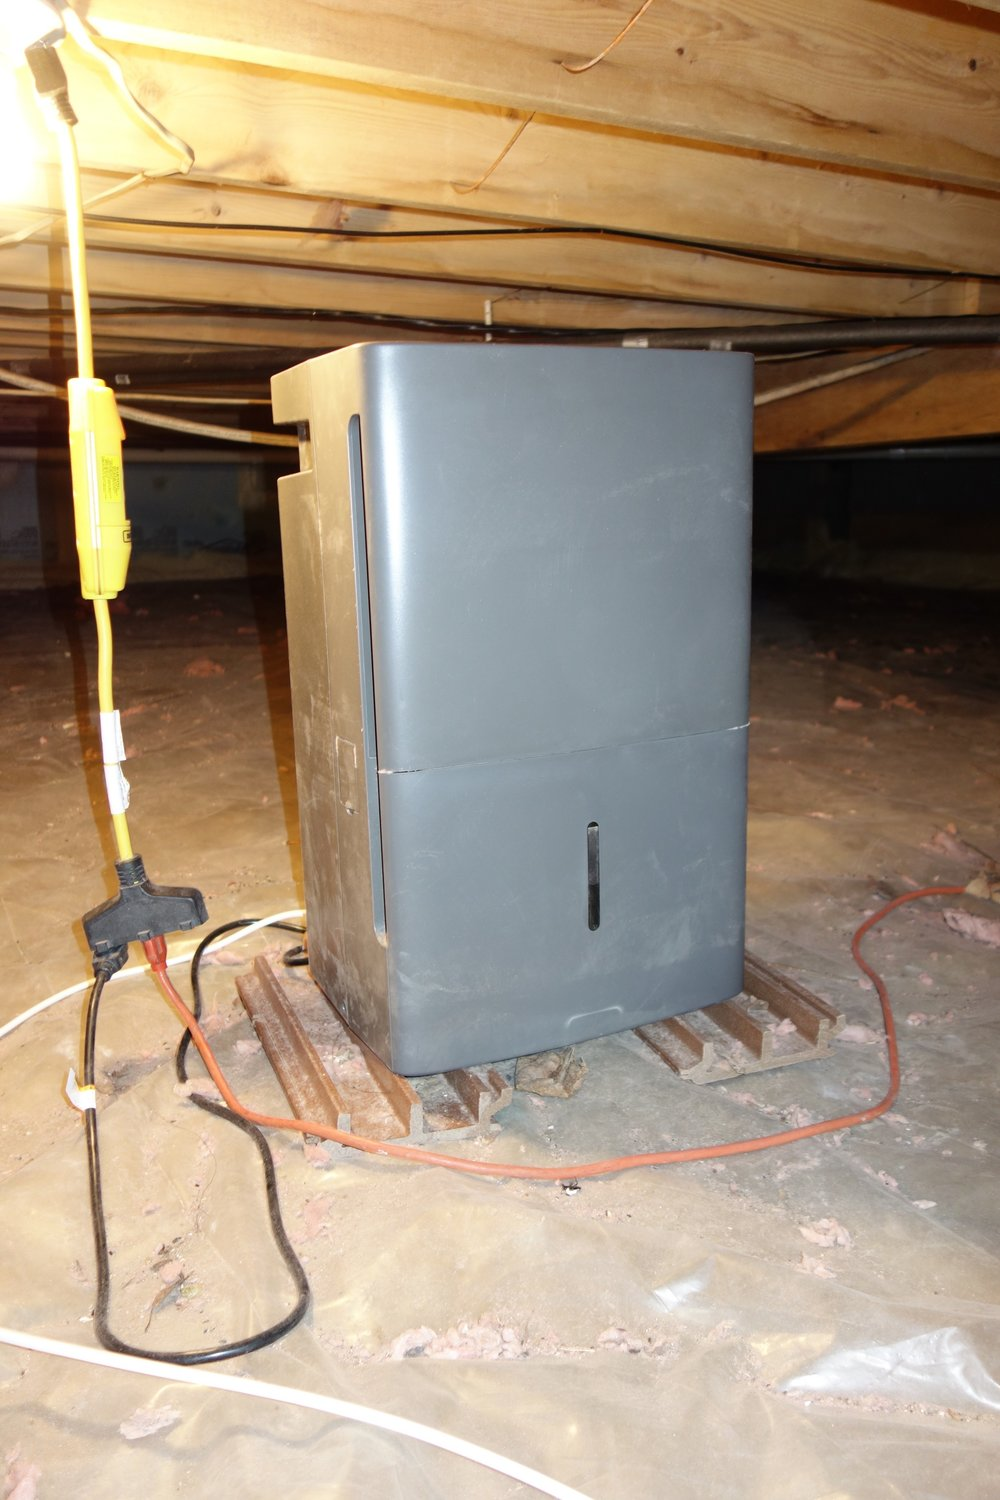 I had an existing light by the south entrance to my crawl space, the kind with 3-prong plugs on the light socket. I put them to good use for my fan and A/C unit, but I occasionally blow a fuse in the kitchen. Next year I will put in a dedicated circuit for the dehumidifier during some other planned renovation.